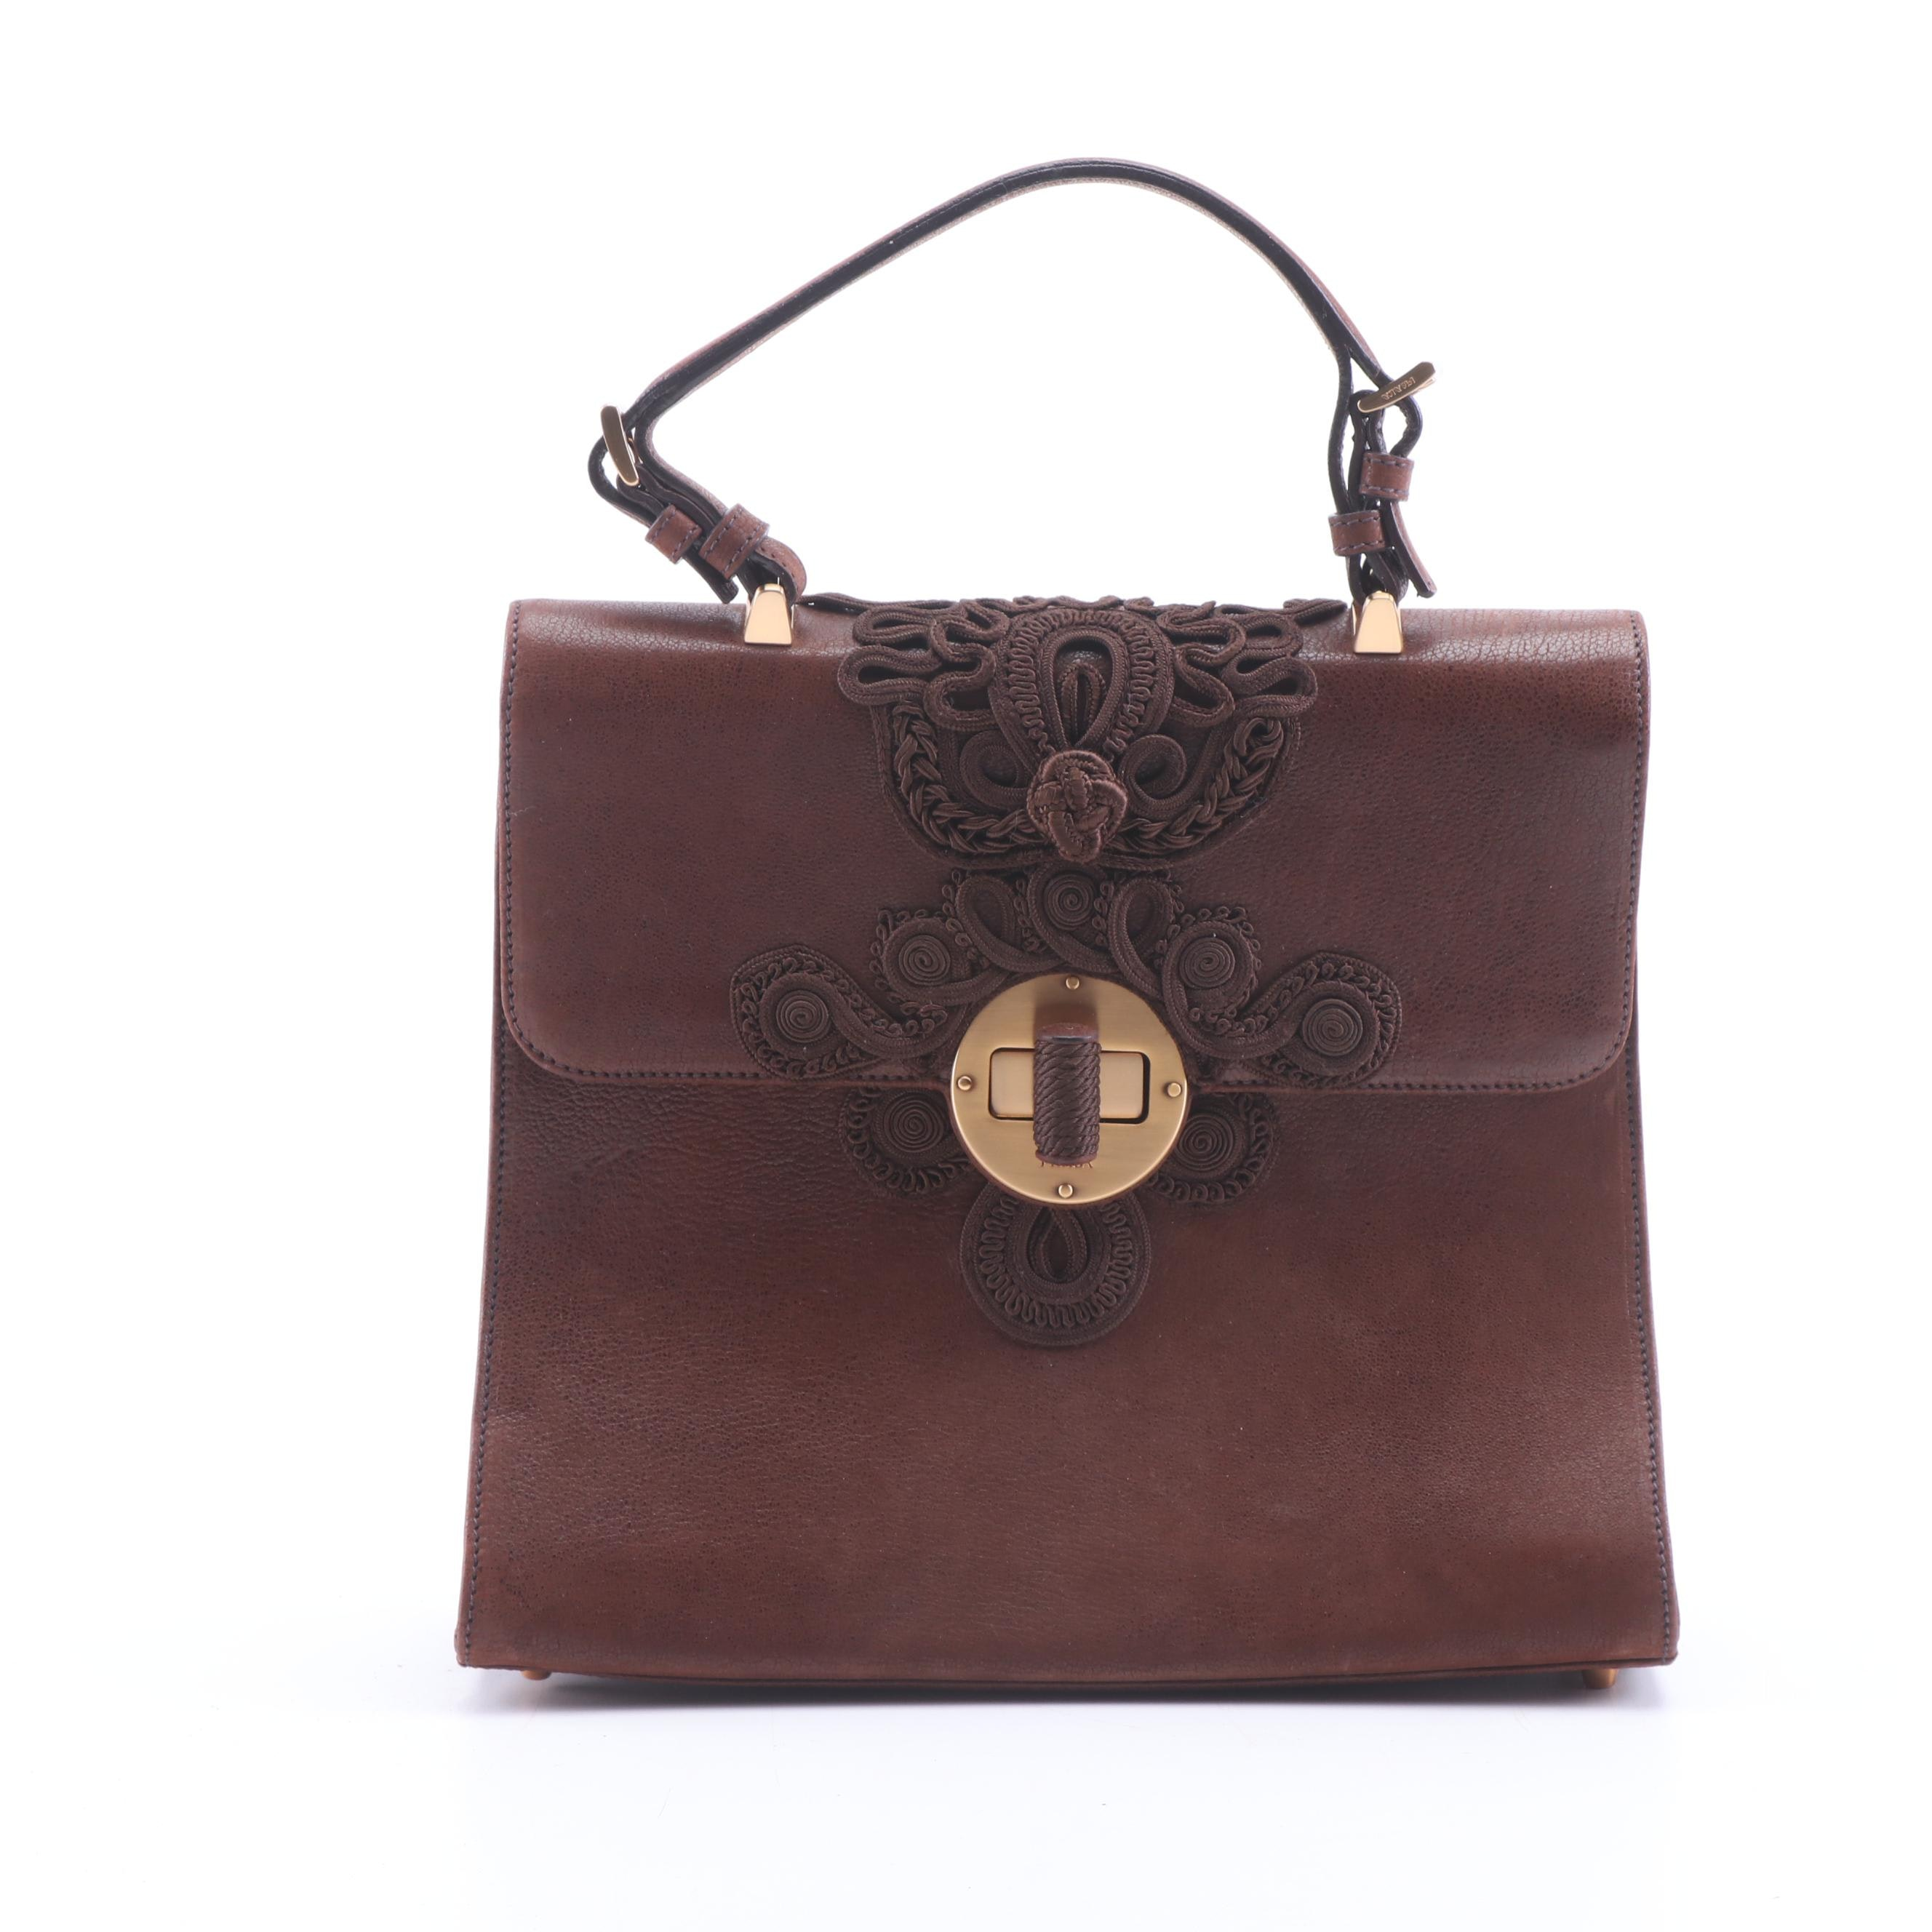 Prada Brown Leather and Soutache Top Handle Purse with Fabric Covered Turnlock